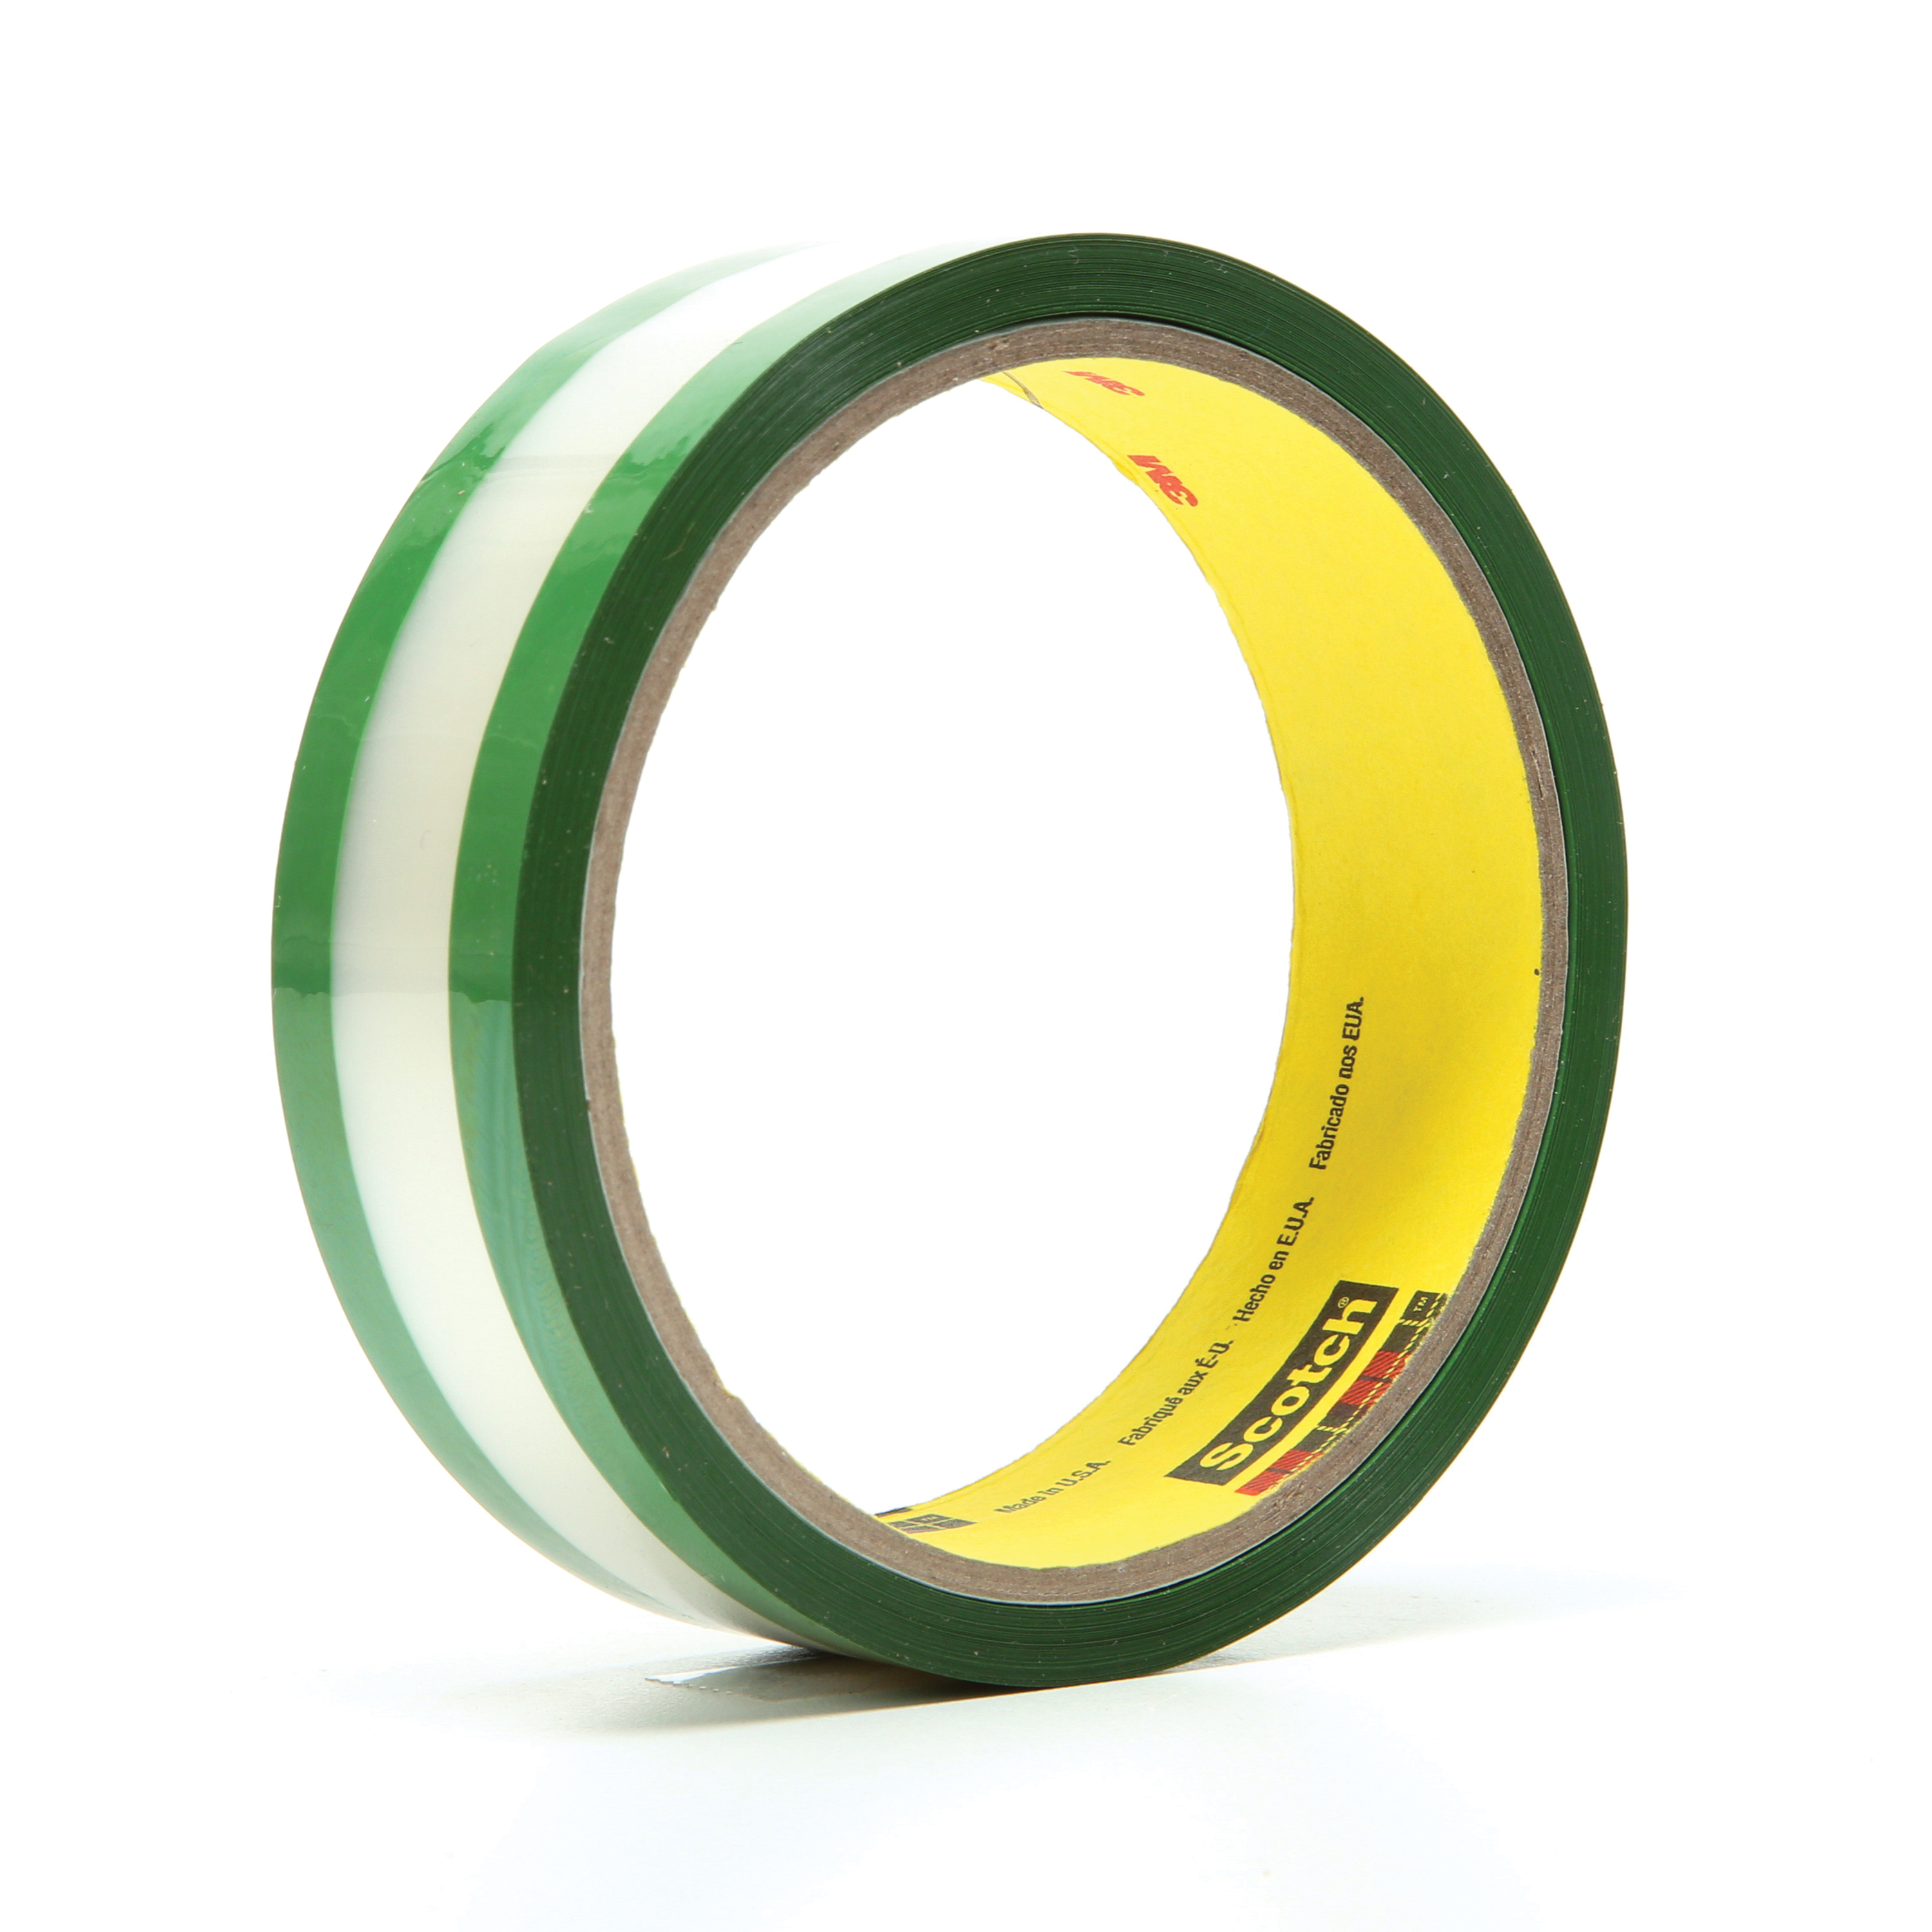 3M™ 021200-03508 Riveters Film Tape, 36 yd L x 1 in W, 1.7 mil THK, Rubber Adhesive, 1 mil Transparent Polyester Backing, Green